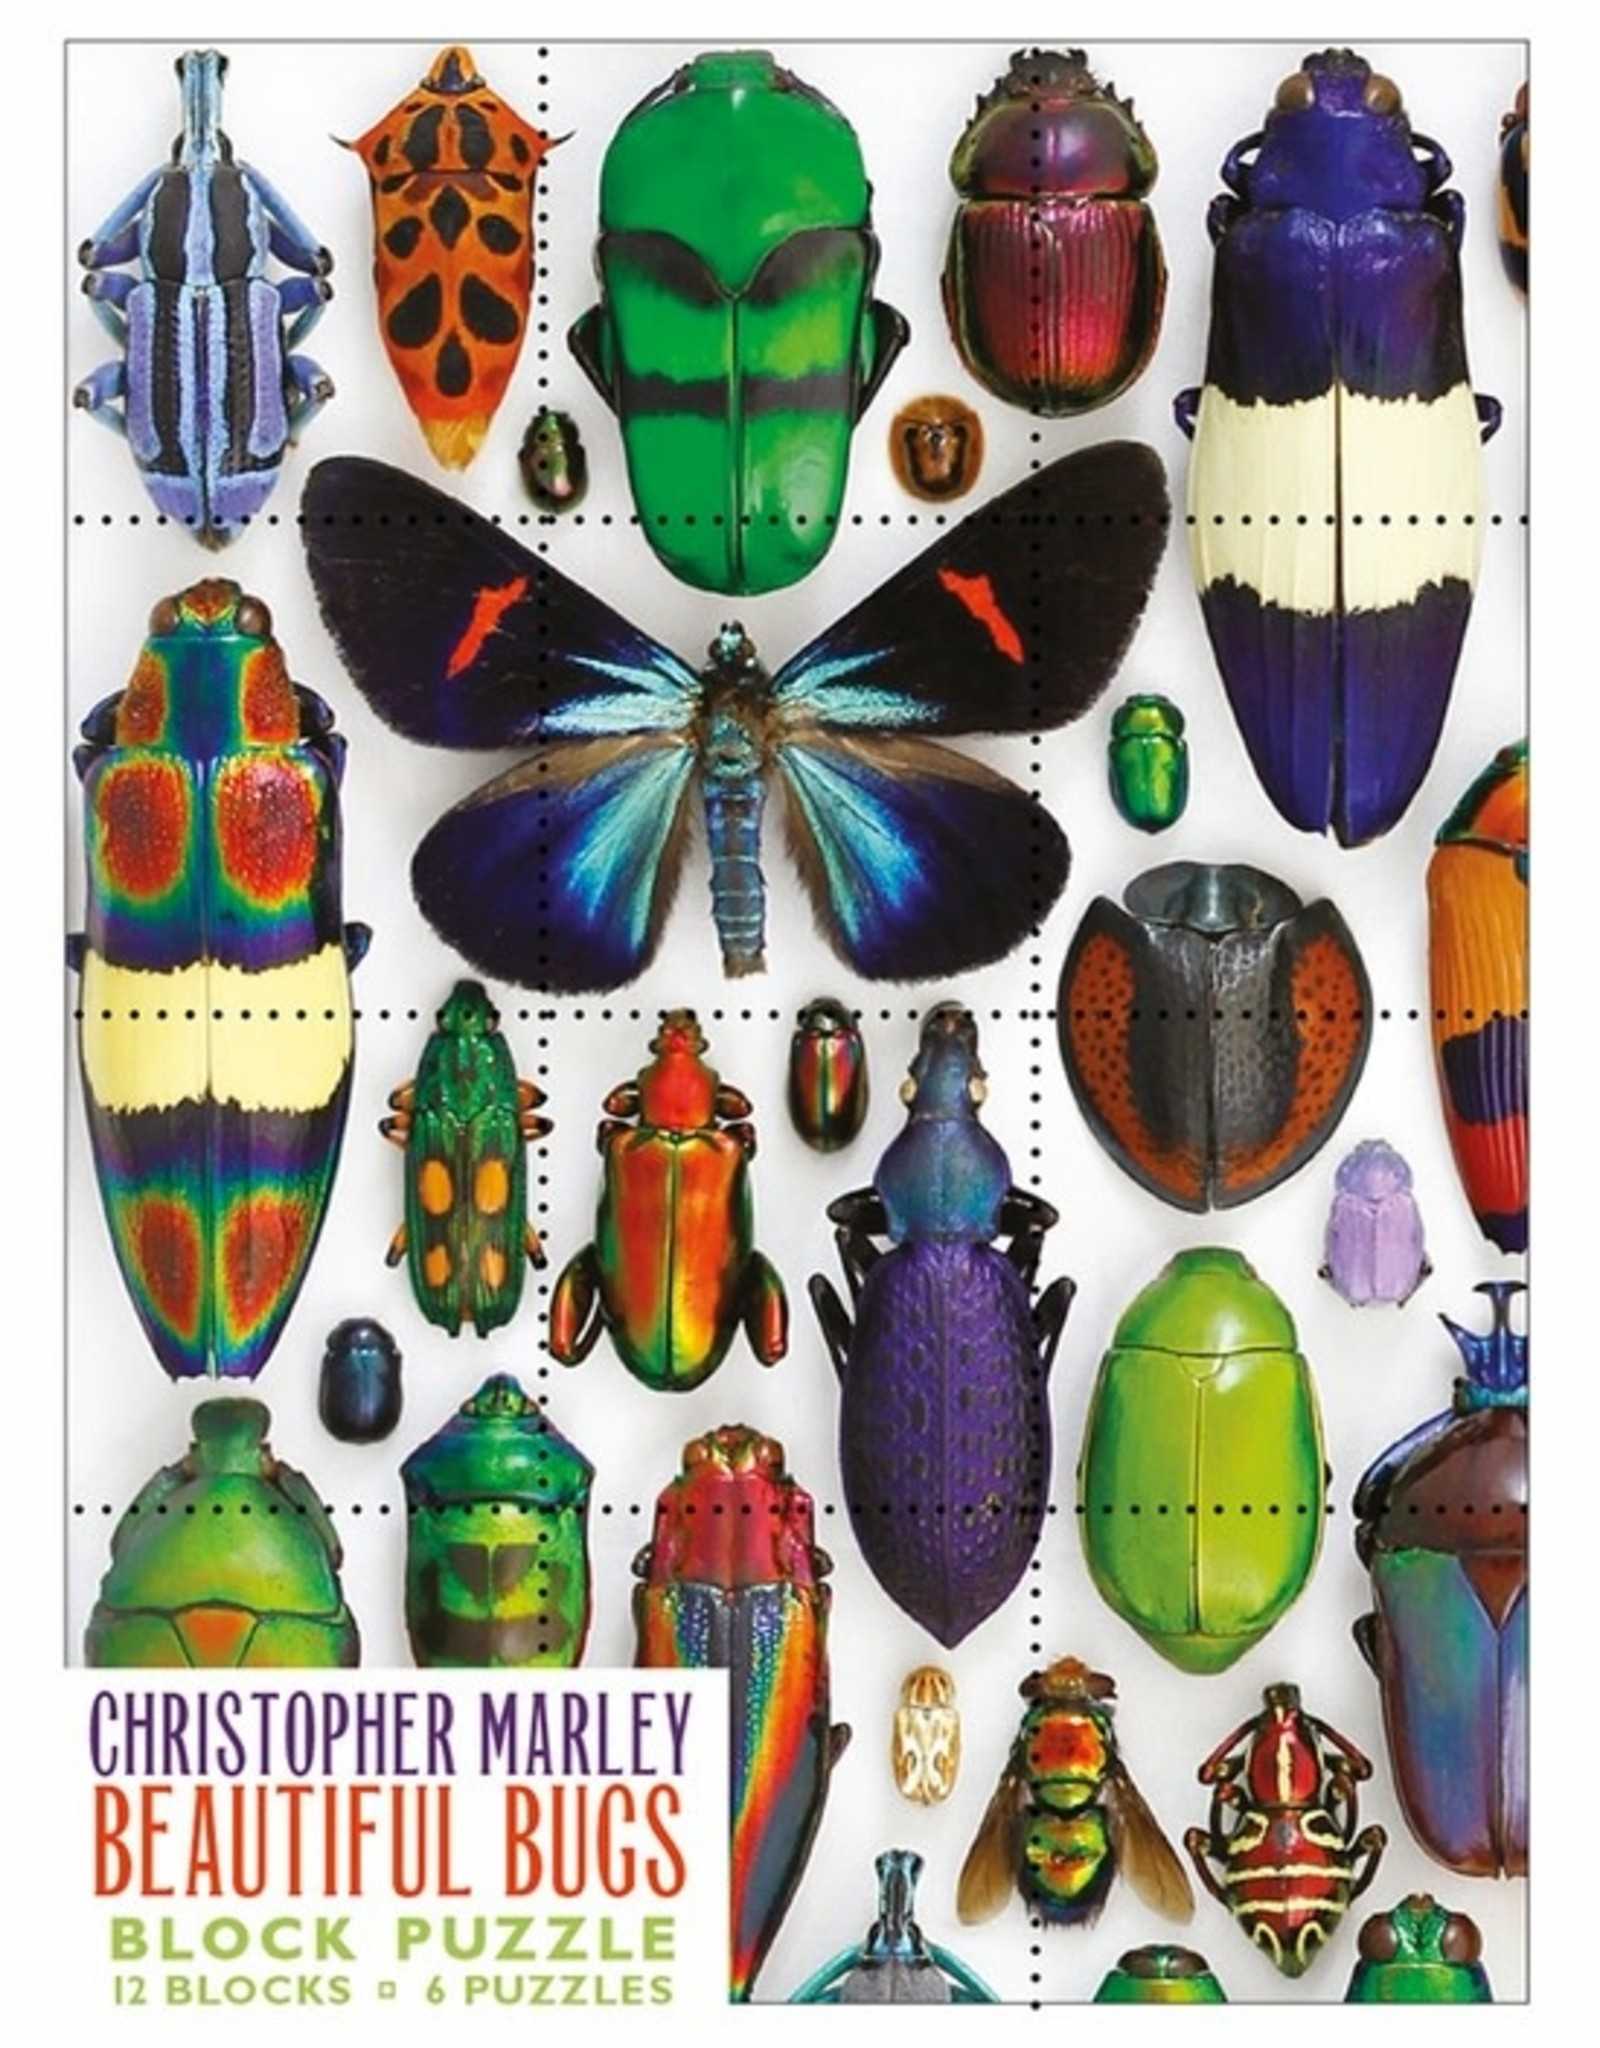 Pomegranite Puzzles - Christopher Marley: Beautiful Bugs Block